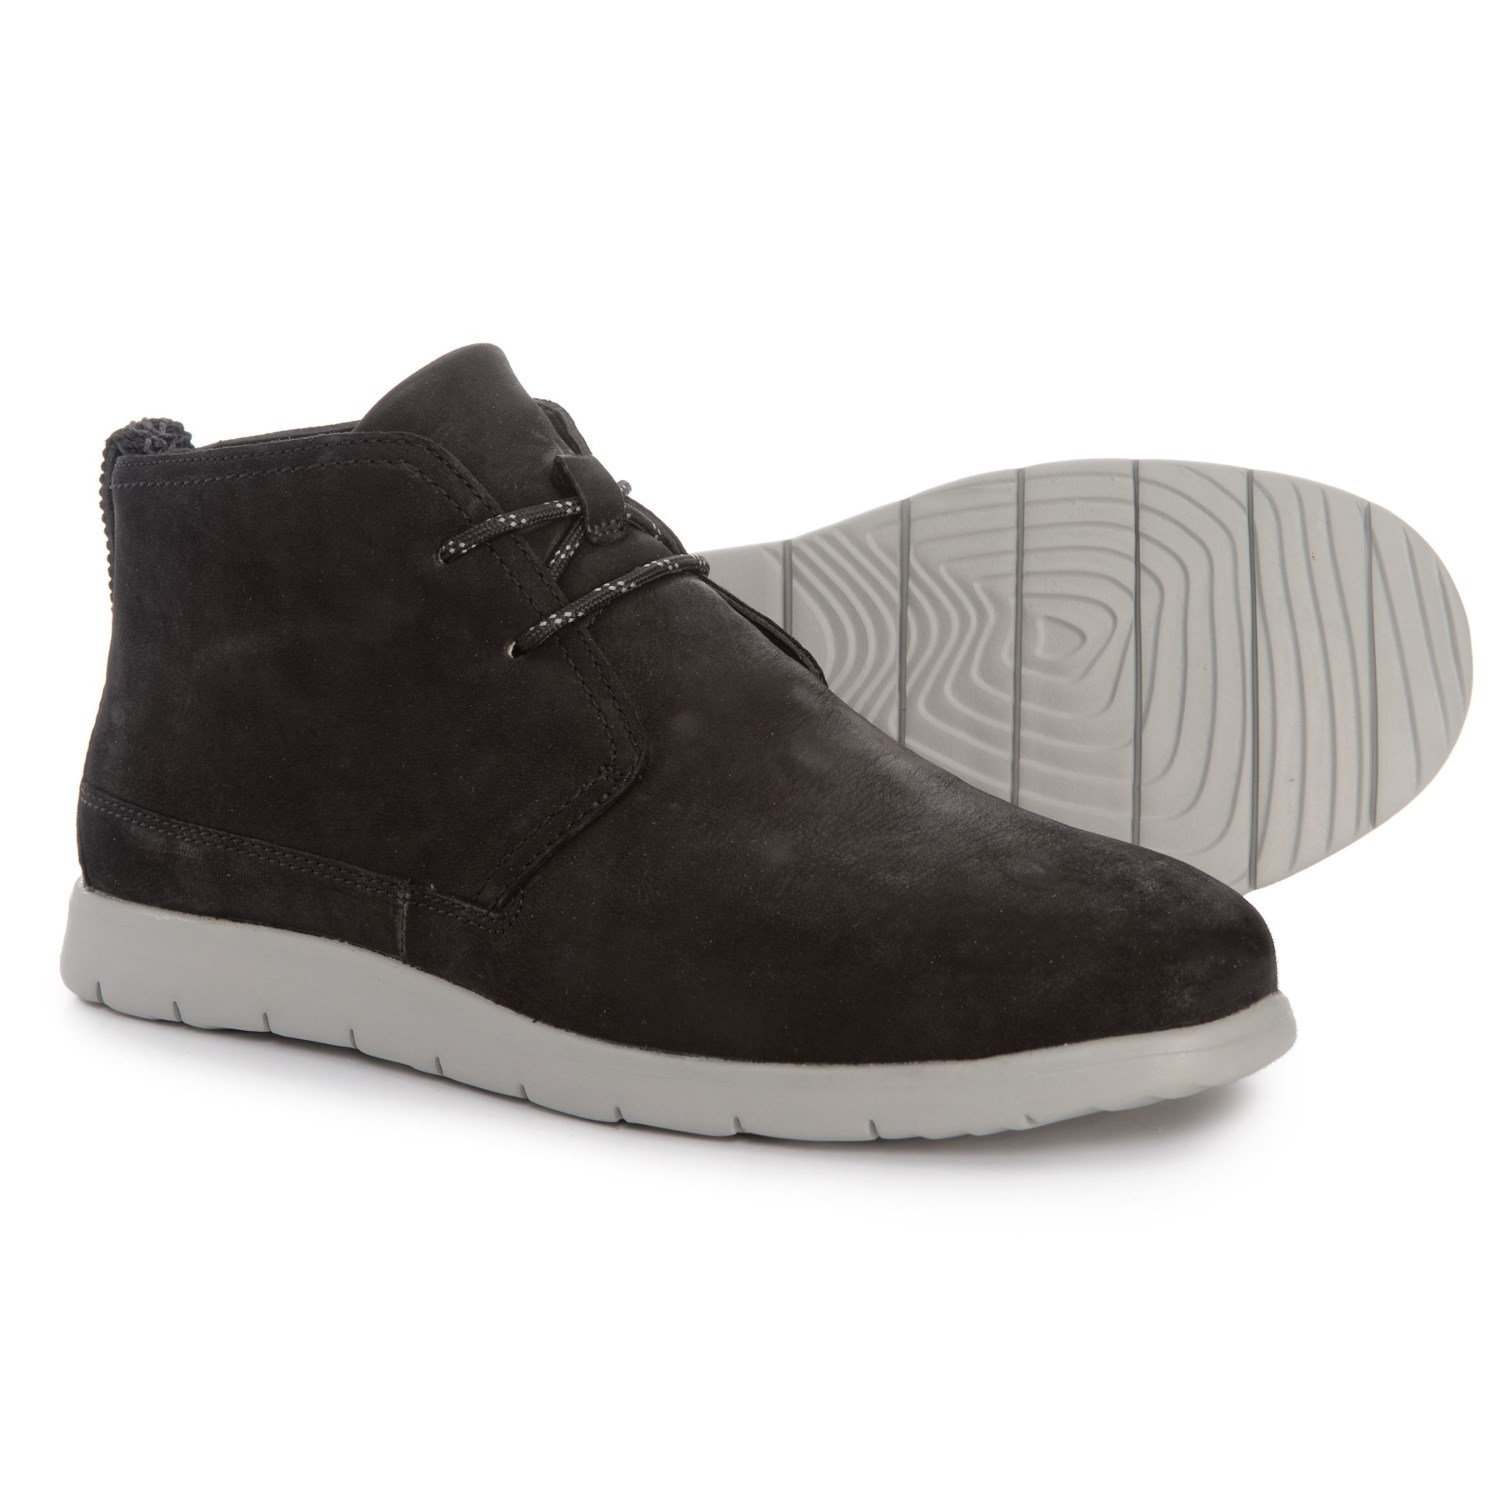 d900c90bc09 UGG® Australia Freamon Capra Chukka Boots - Goat Leather (For Men)